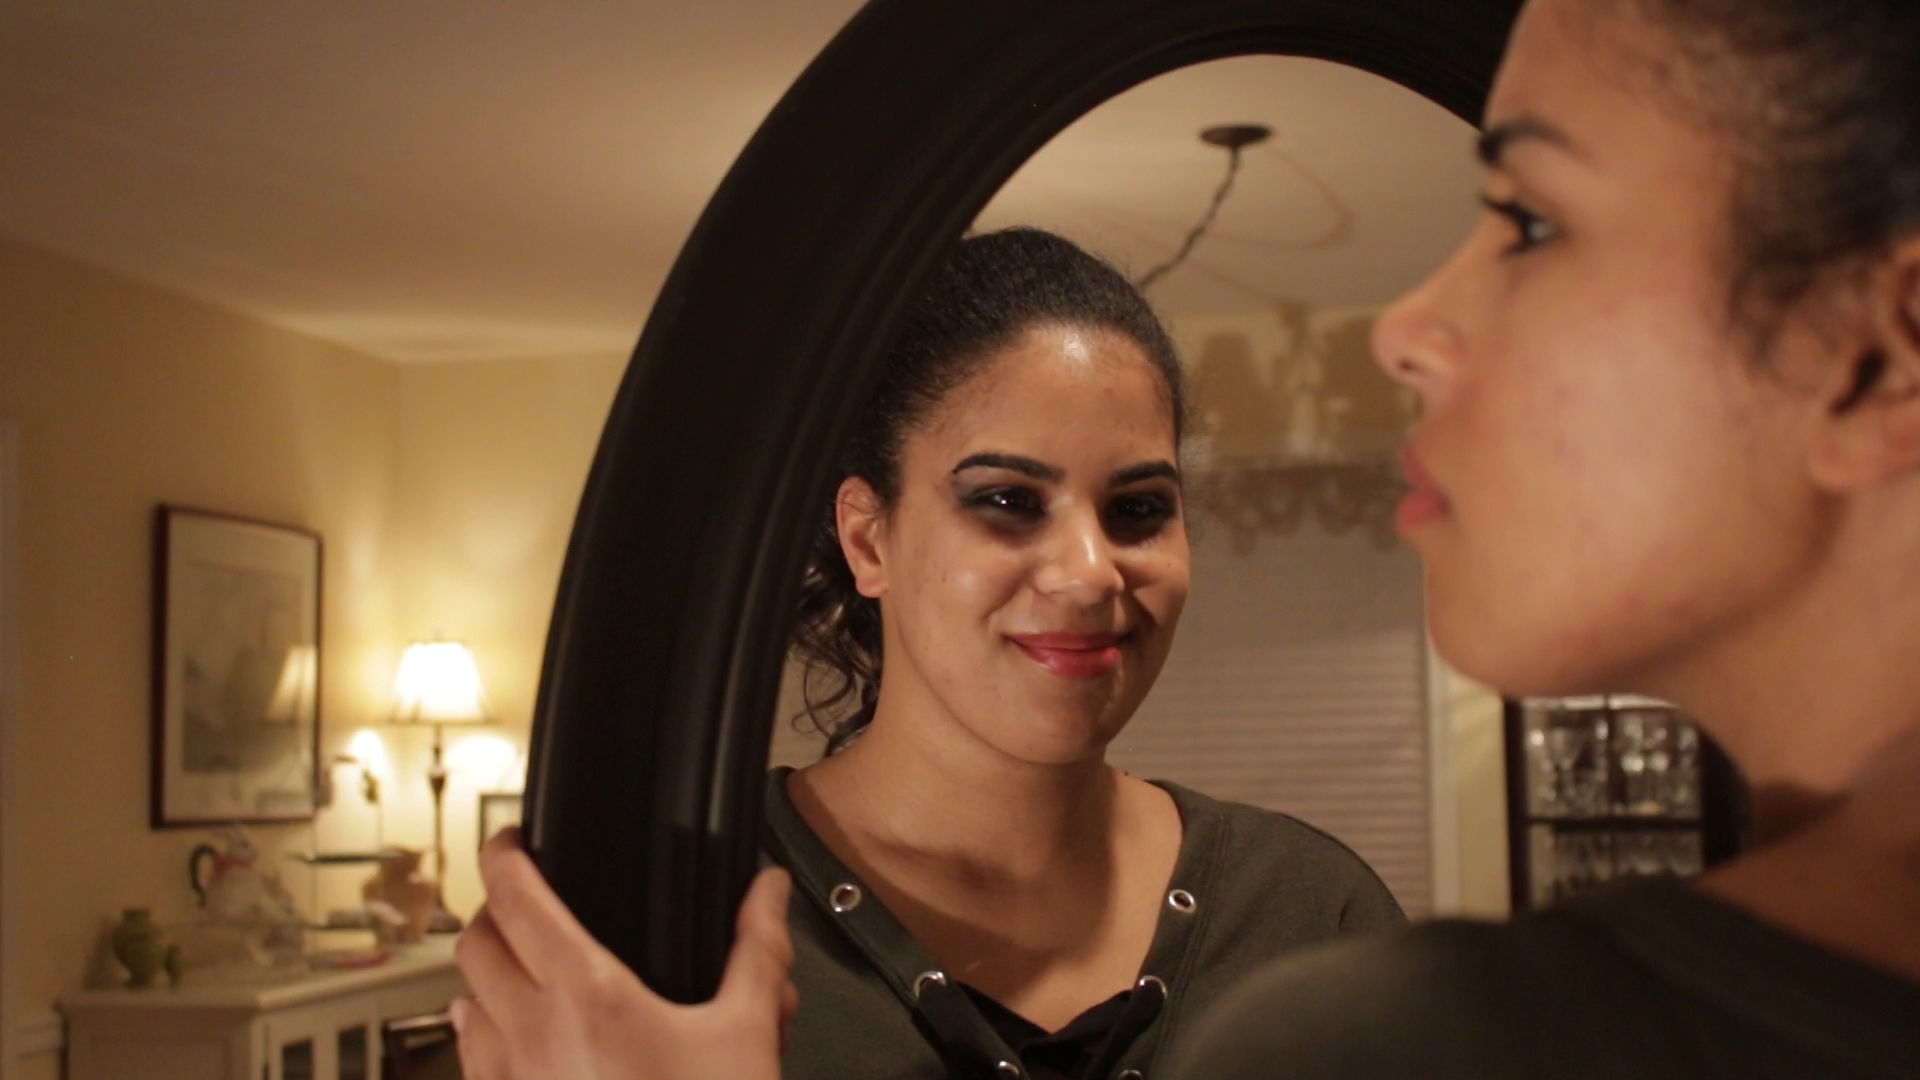 Bianca and the Mirror